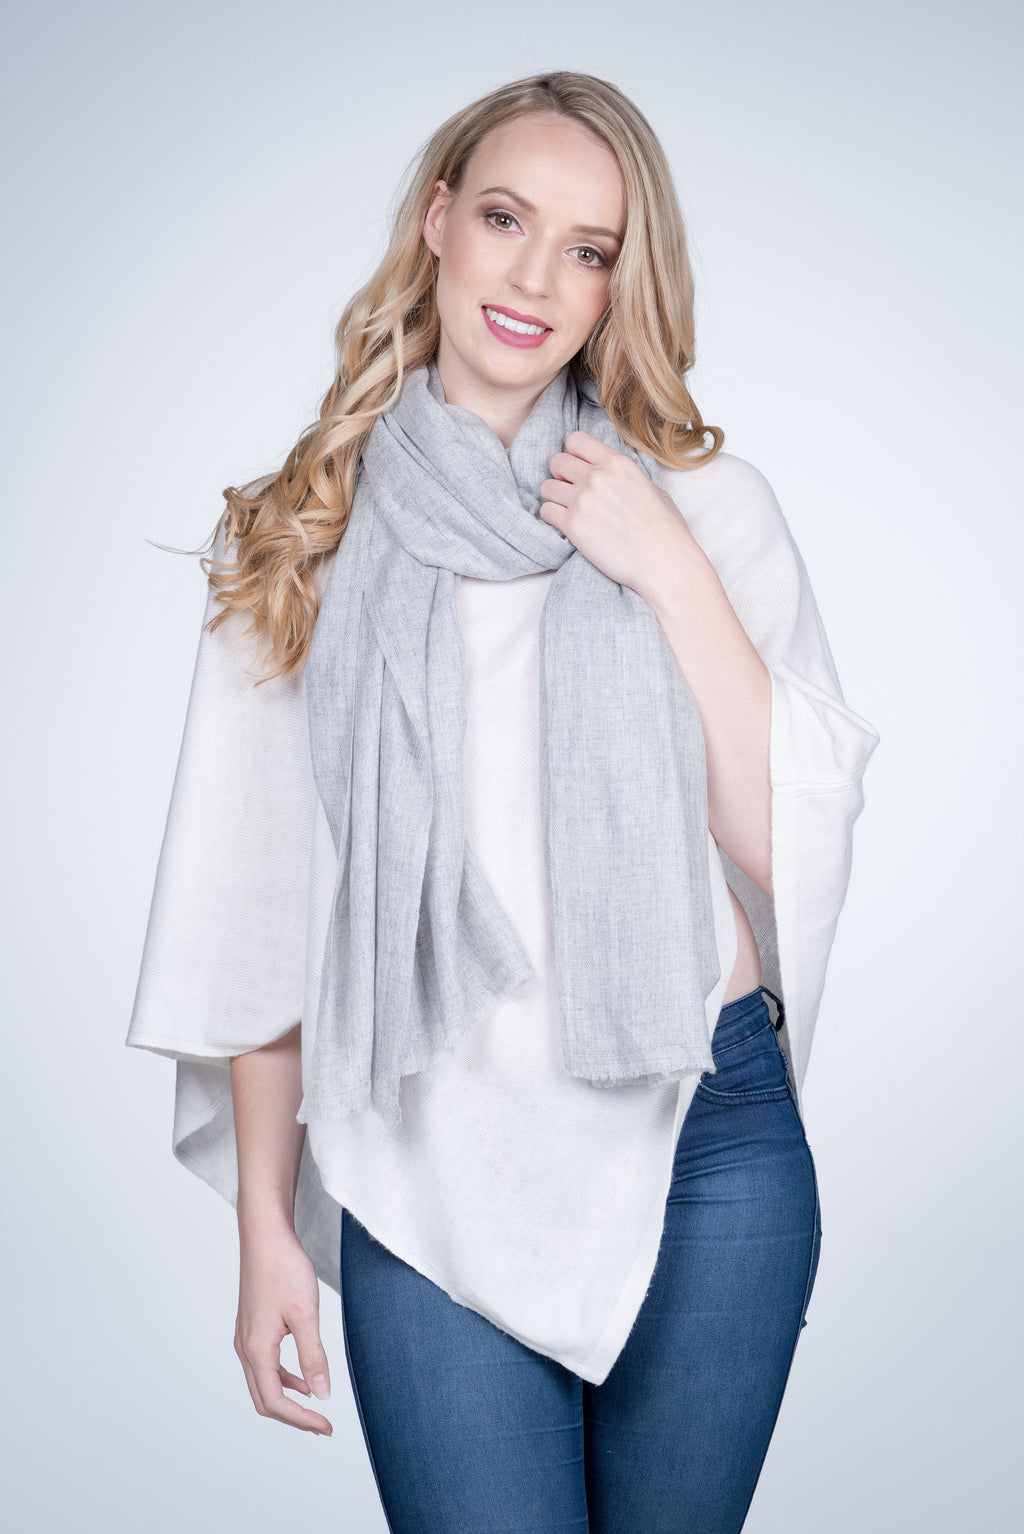 Nine Yaks Natural Cashmere Shawl - Light Grey -Accessories